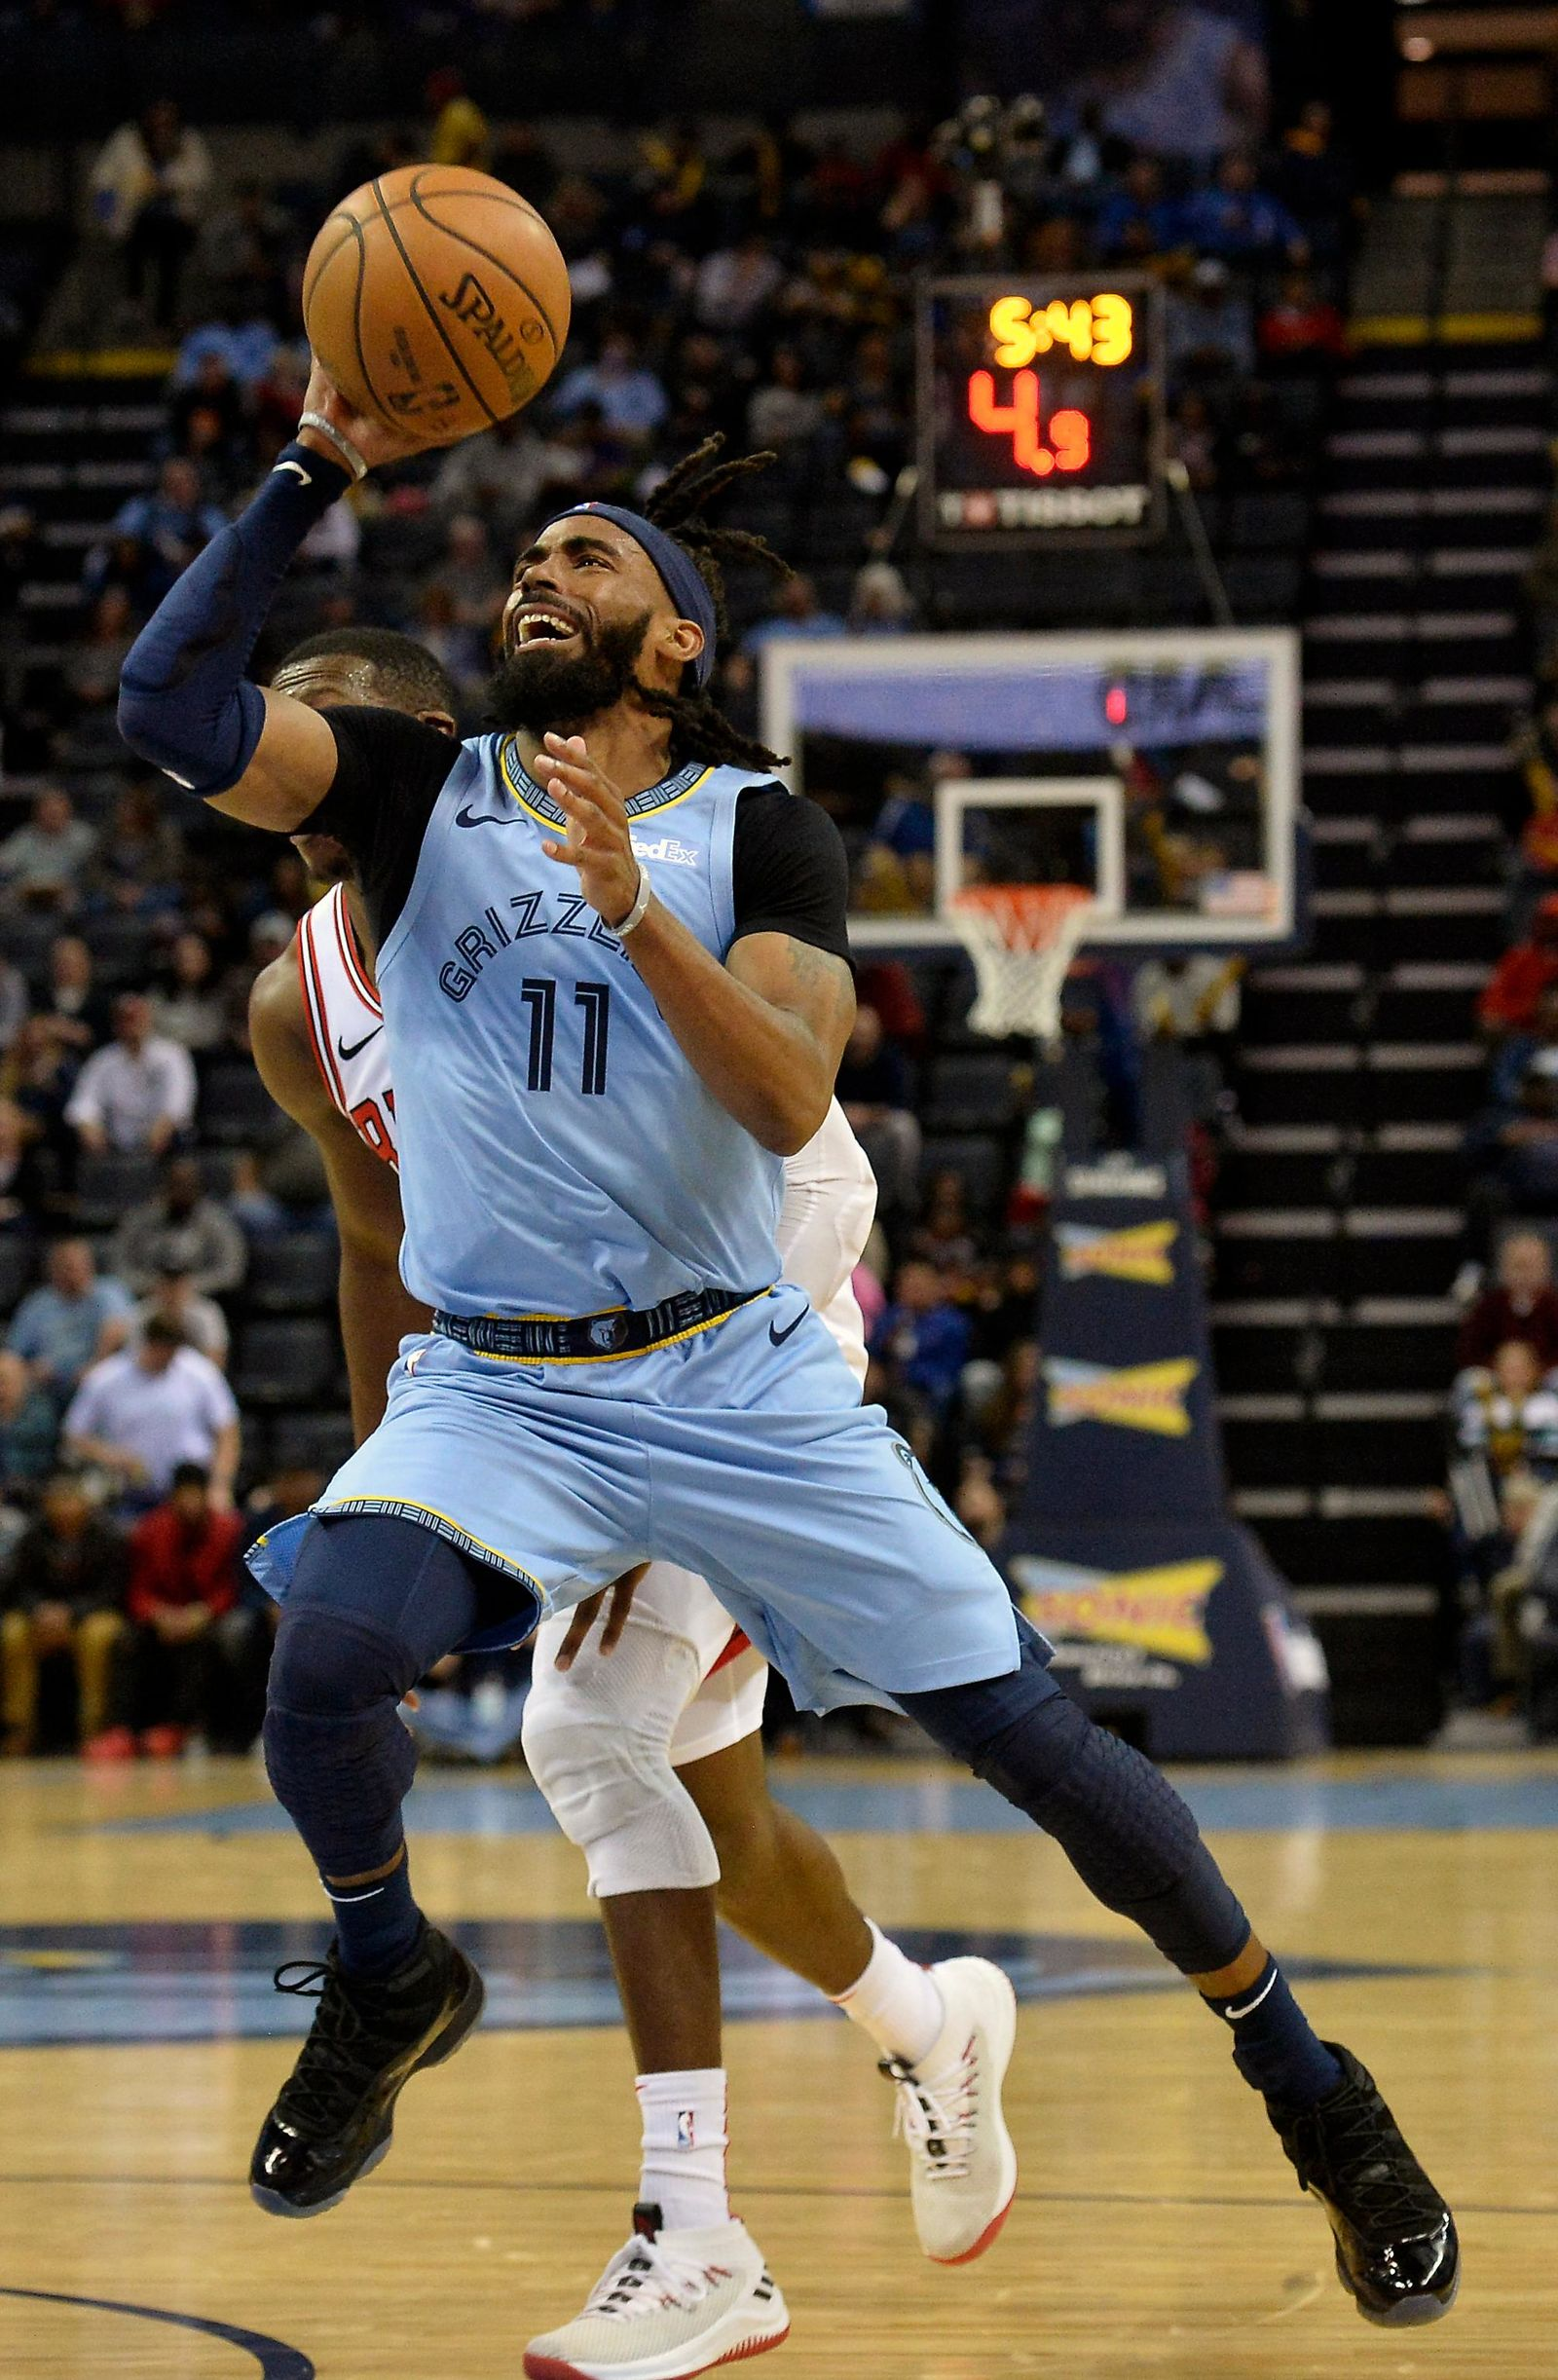 FILE - In this Feb. 27, 2019, file photo, Memphis Grizzlies guard Mike Conley (11) shoots the ball in the first half of an NBA basketball game against the Chicago Bulls, in Memphis, Tenn. A person with knowledge of the decision says the Memphis Grizzlies have traded veteran point guard Mike Conley, who has played the most games in franchise history, to the Utah Jazz. The person says the Grizzlies swapped Conley for Jae Crowder, Kyle Korver and Grayson Allen. The person spoke to The Associated Press Wednesday, June 19, 2019, on condition of anonymity because neither Memphis nor Utah has announced the trade. (AP Photo/Brandon Dill, File)